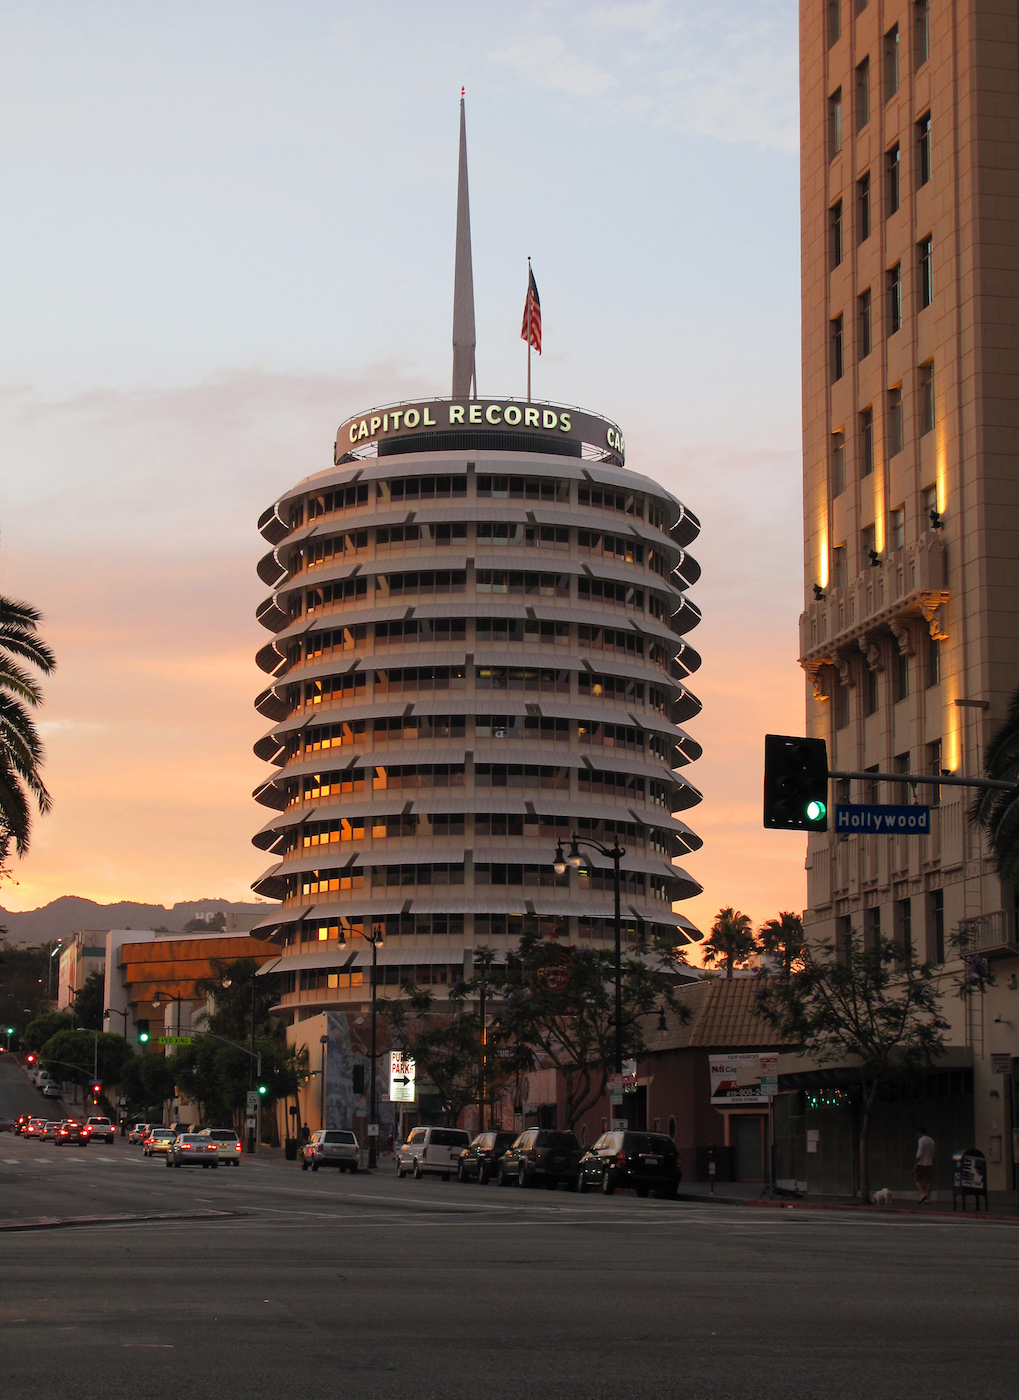 The Capitol Records Building in Los Angeles (photo by Downtowngal/Wikimedia)